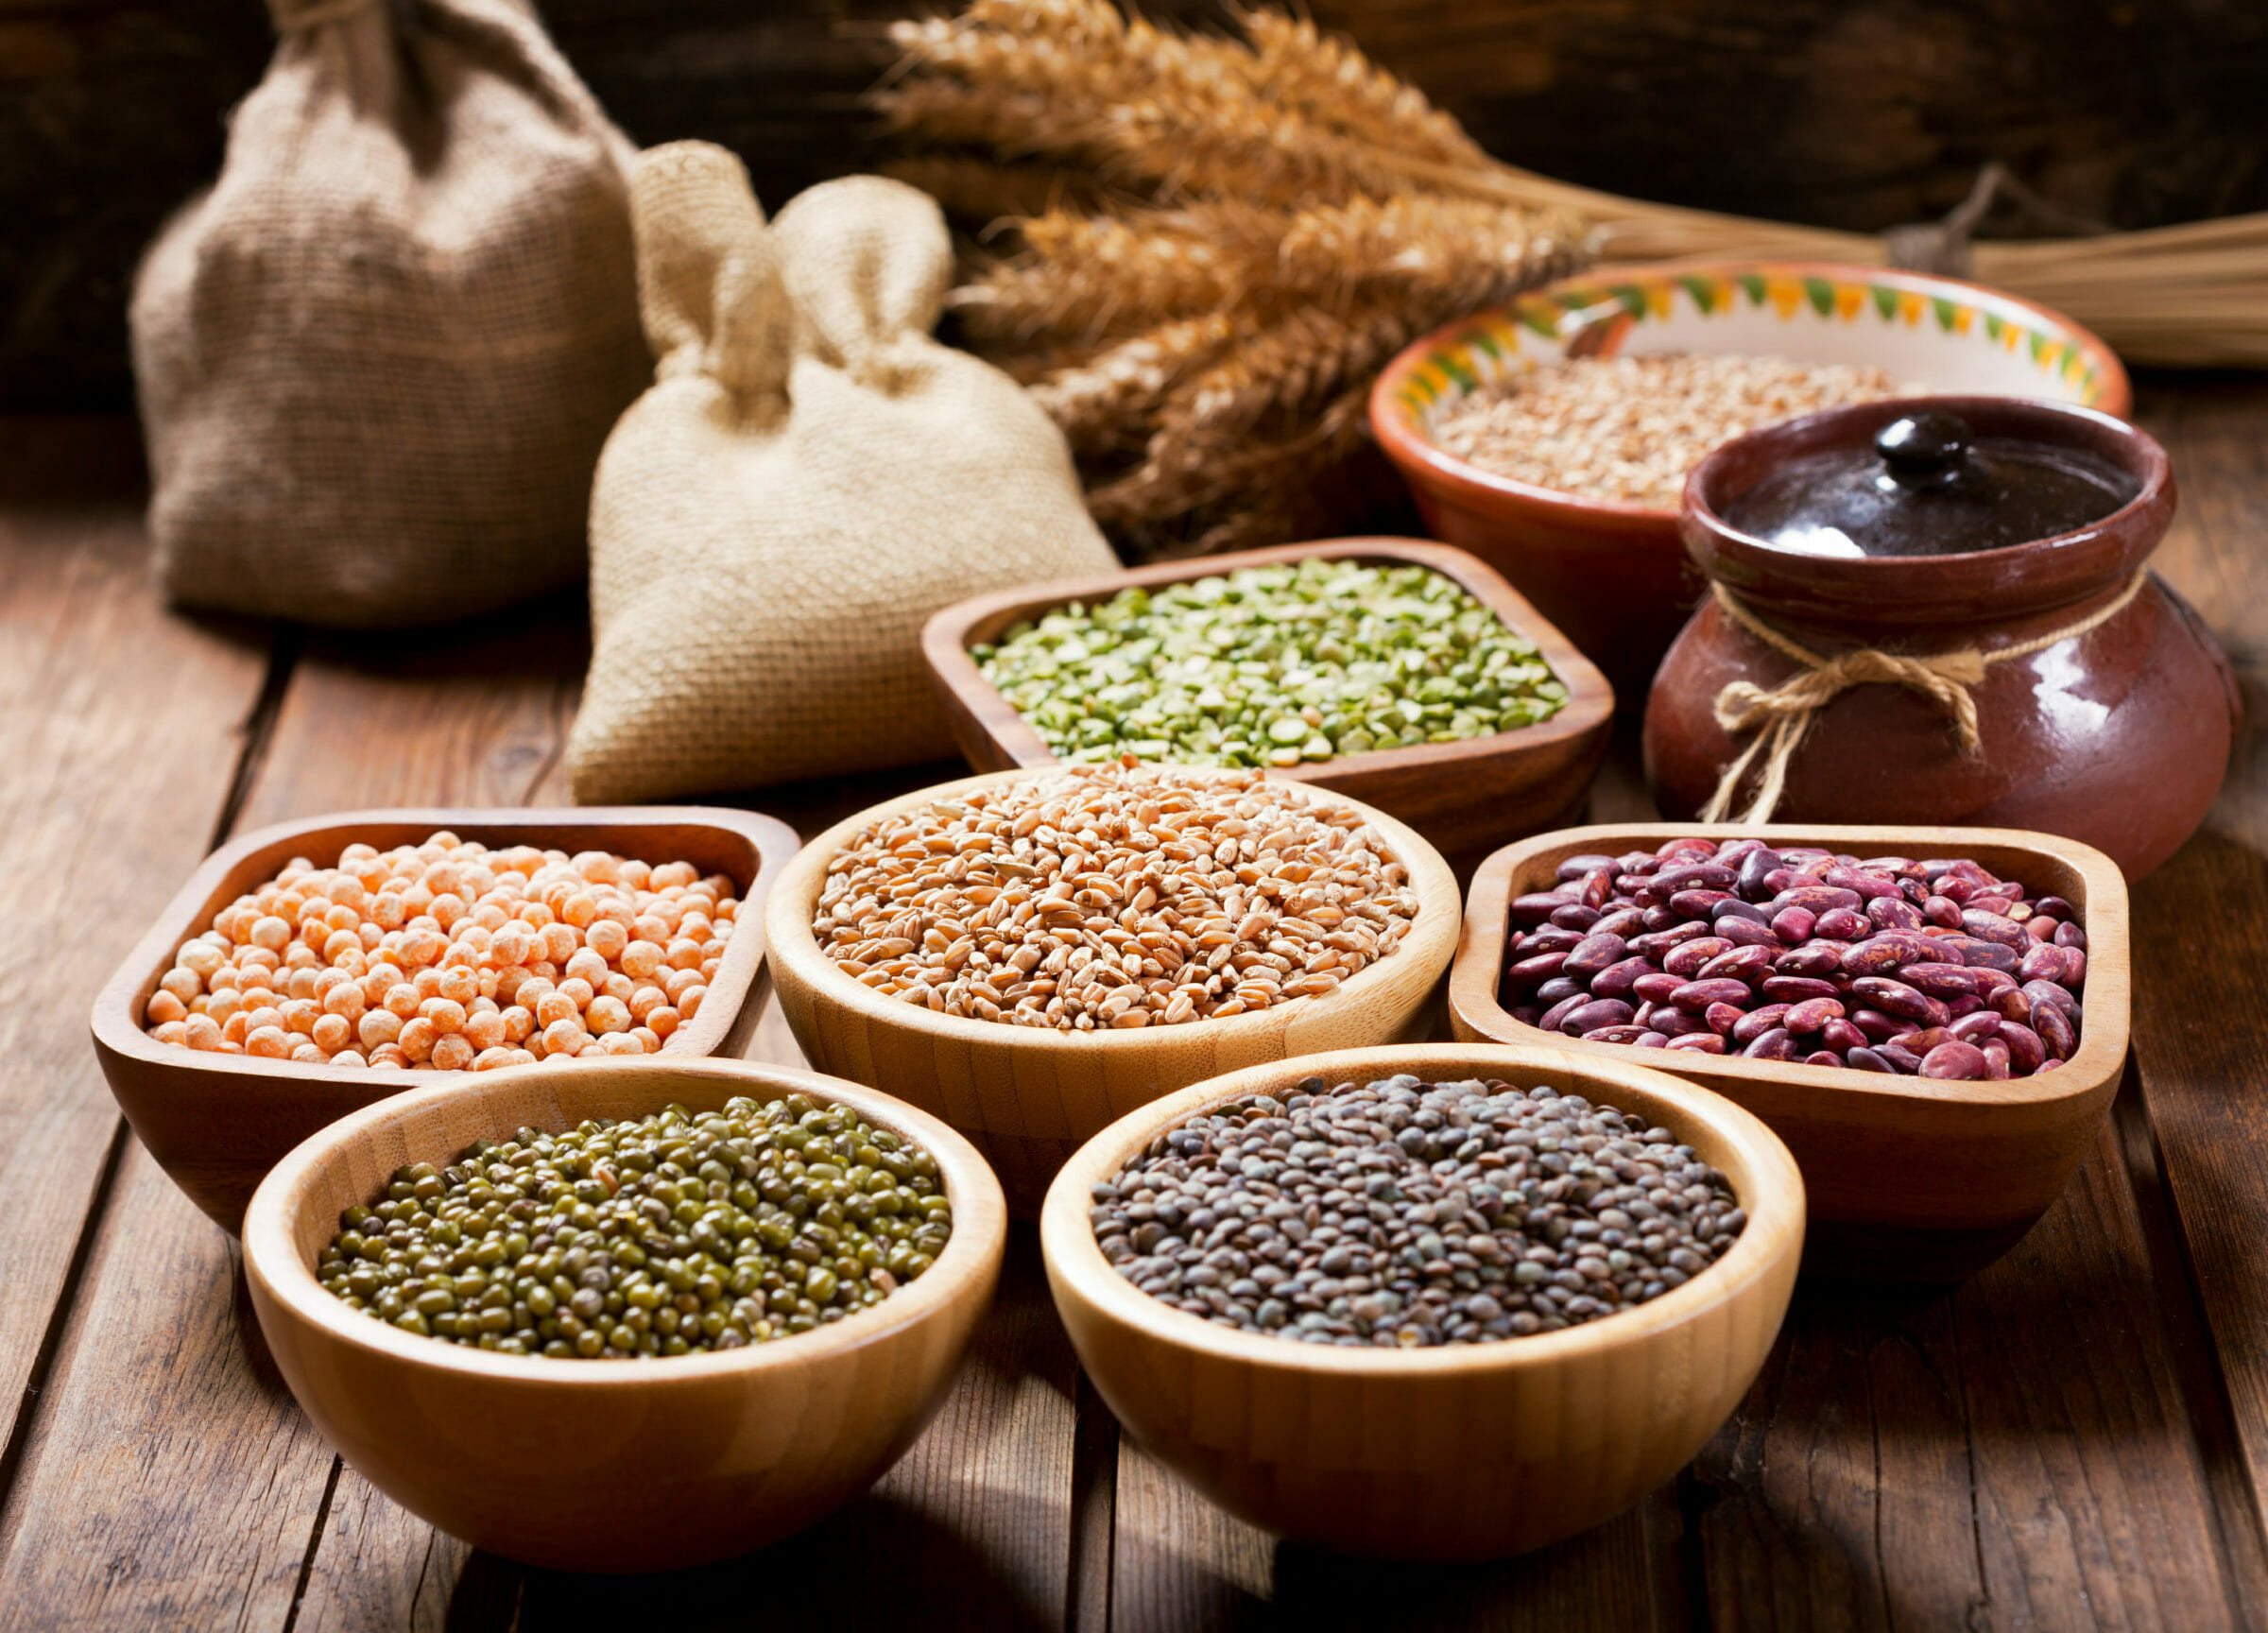 Legumes provide low nutritional value